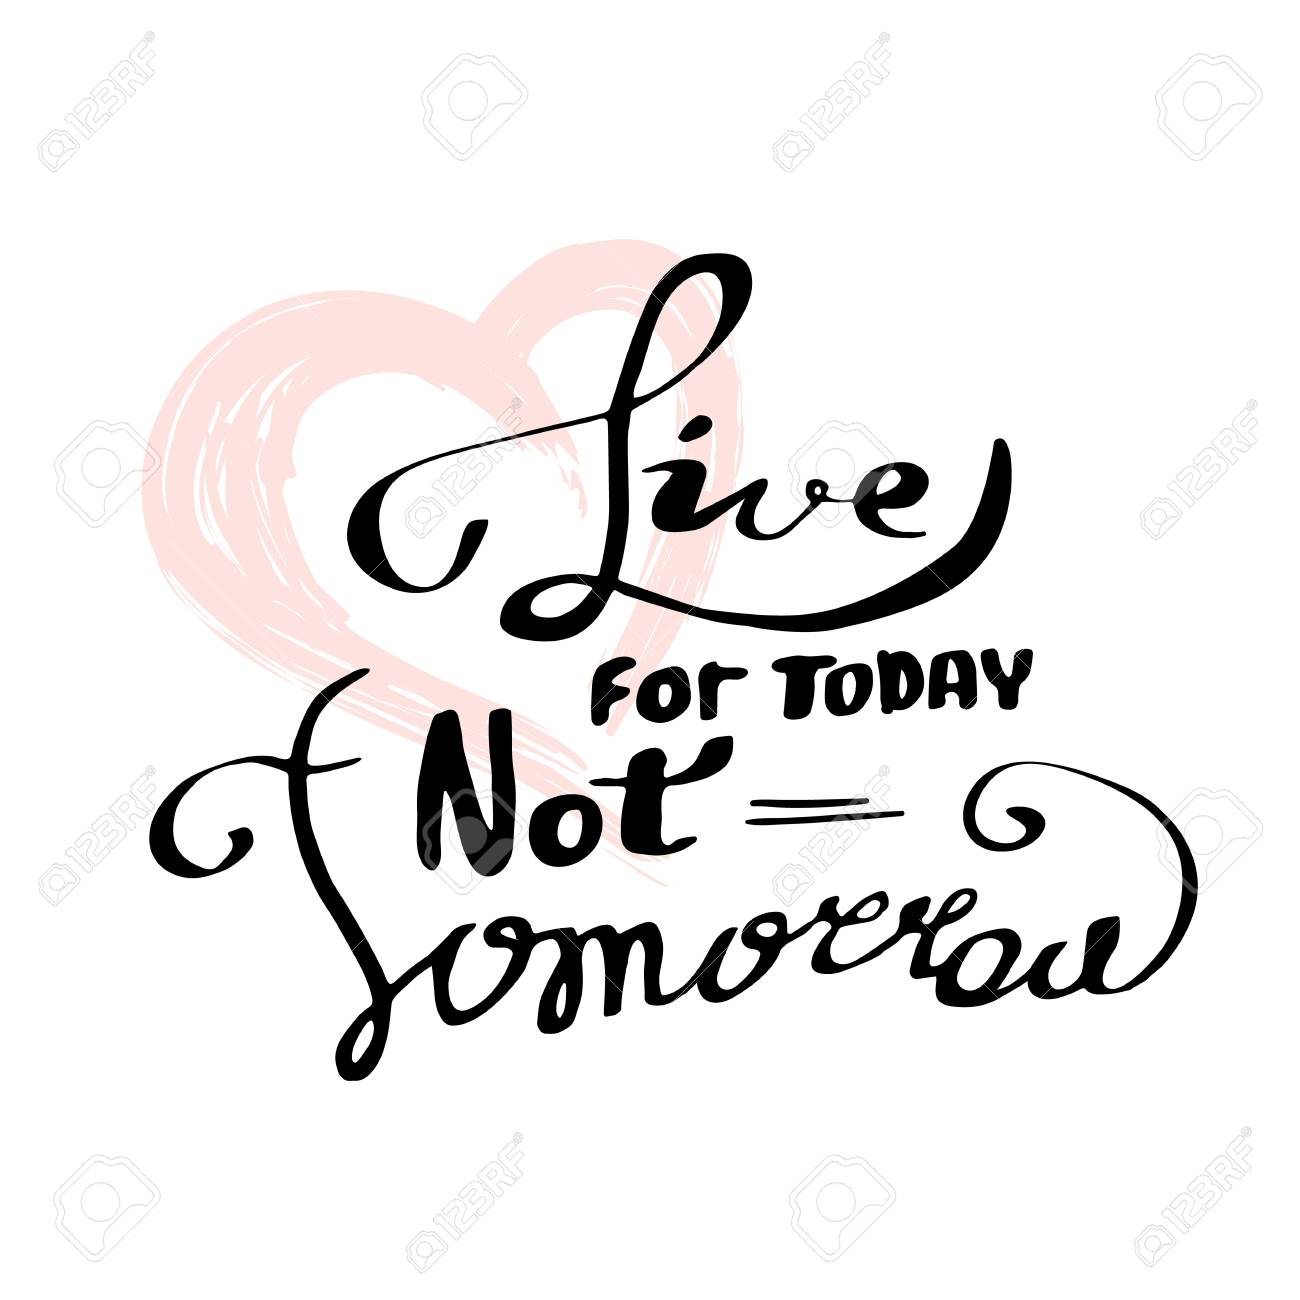 Live For Today Quotes Interesting Live For Today Not Tomorrow Inspirational Quote Motivation